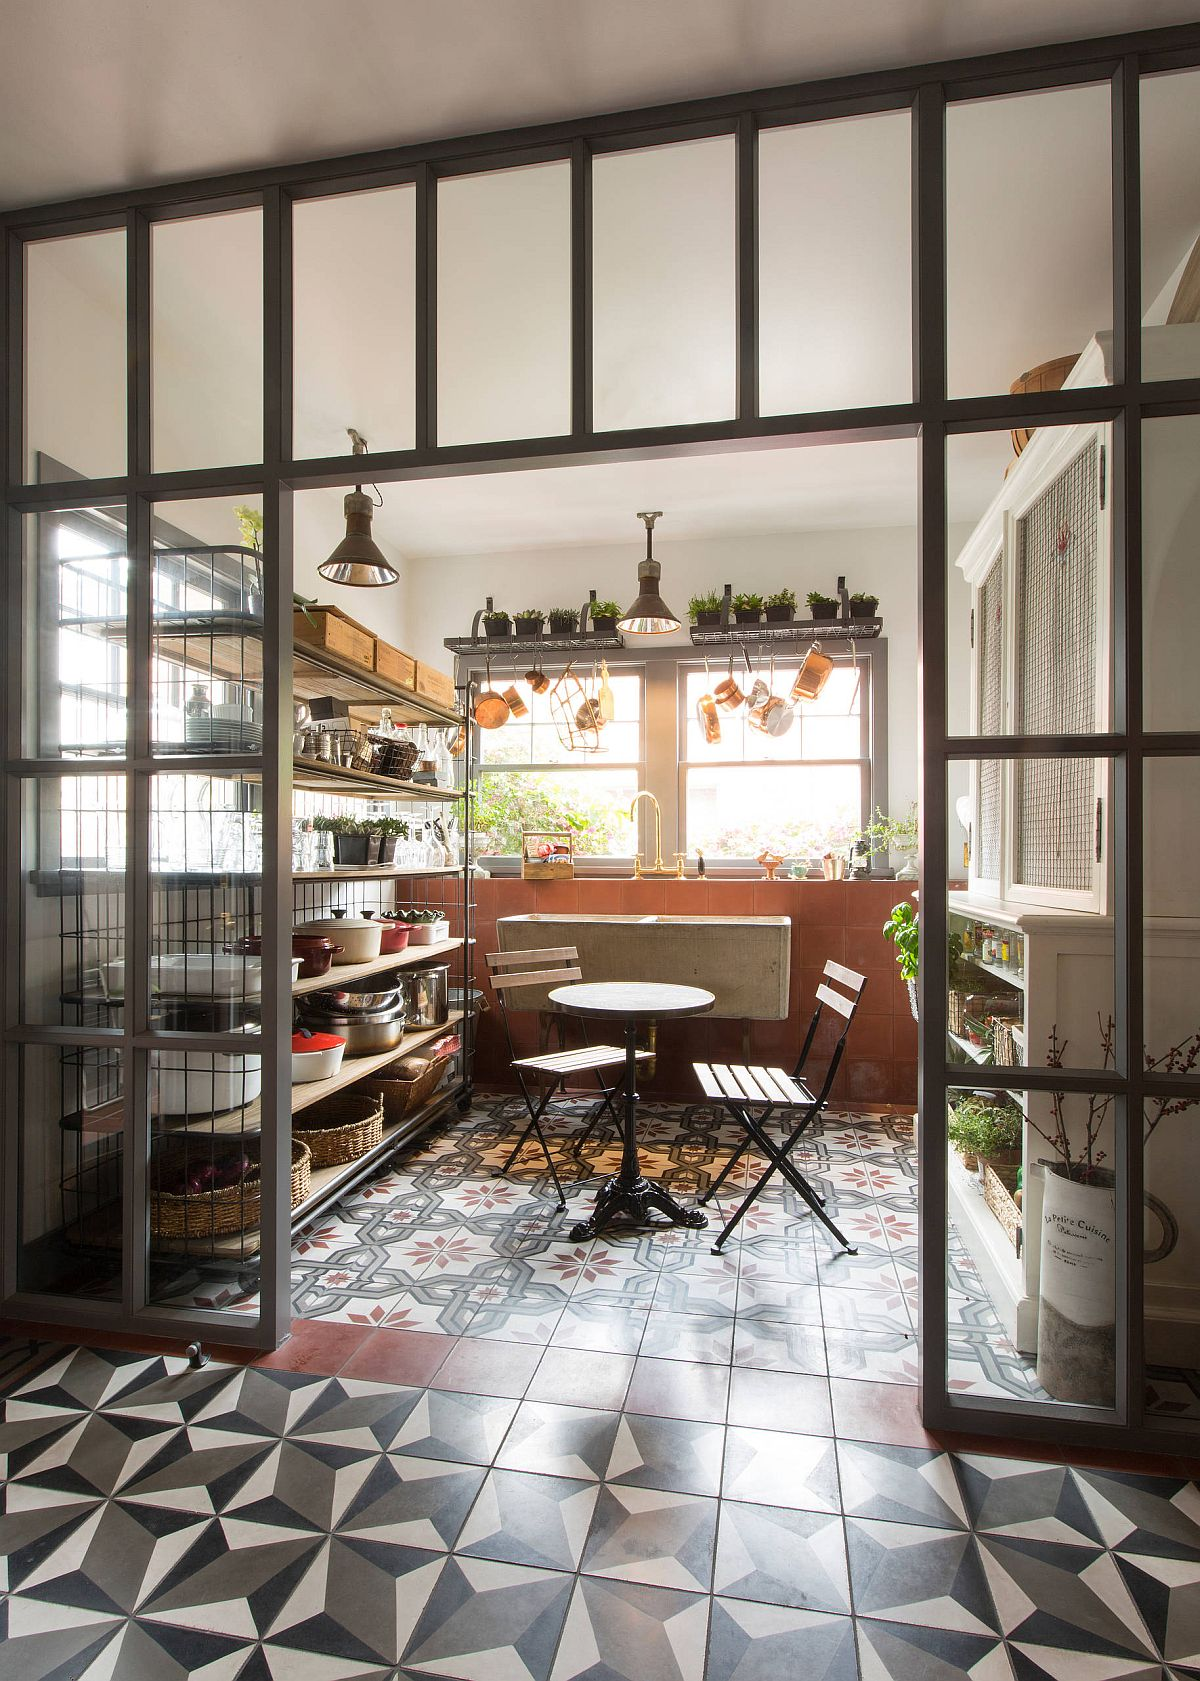 Snazzy-and-easy-way-to-combine-the-industrial-style-pantry-with-the-dining-room-95263